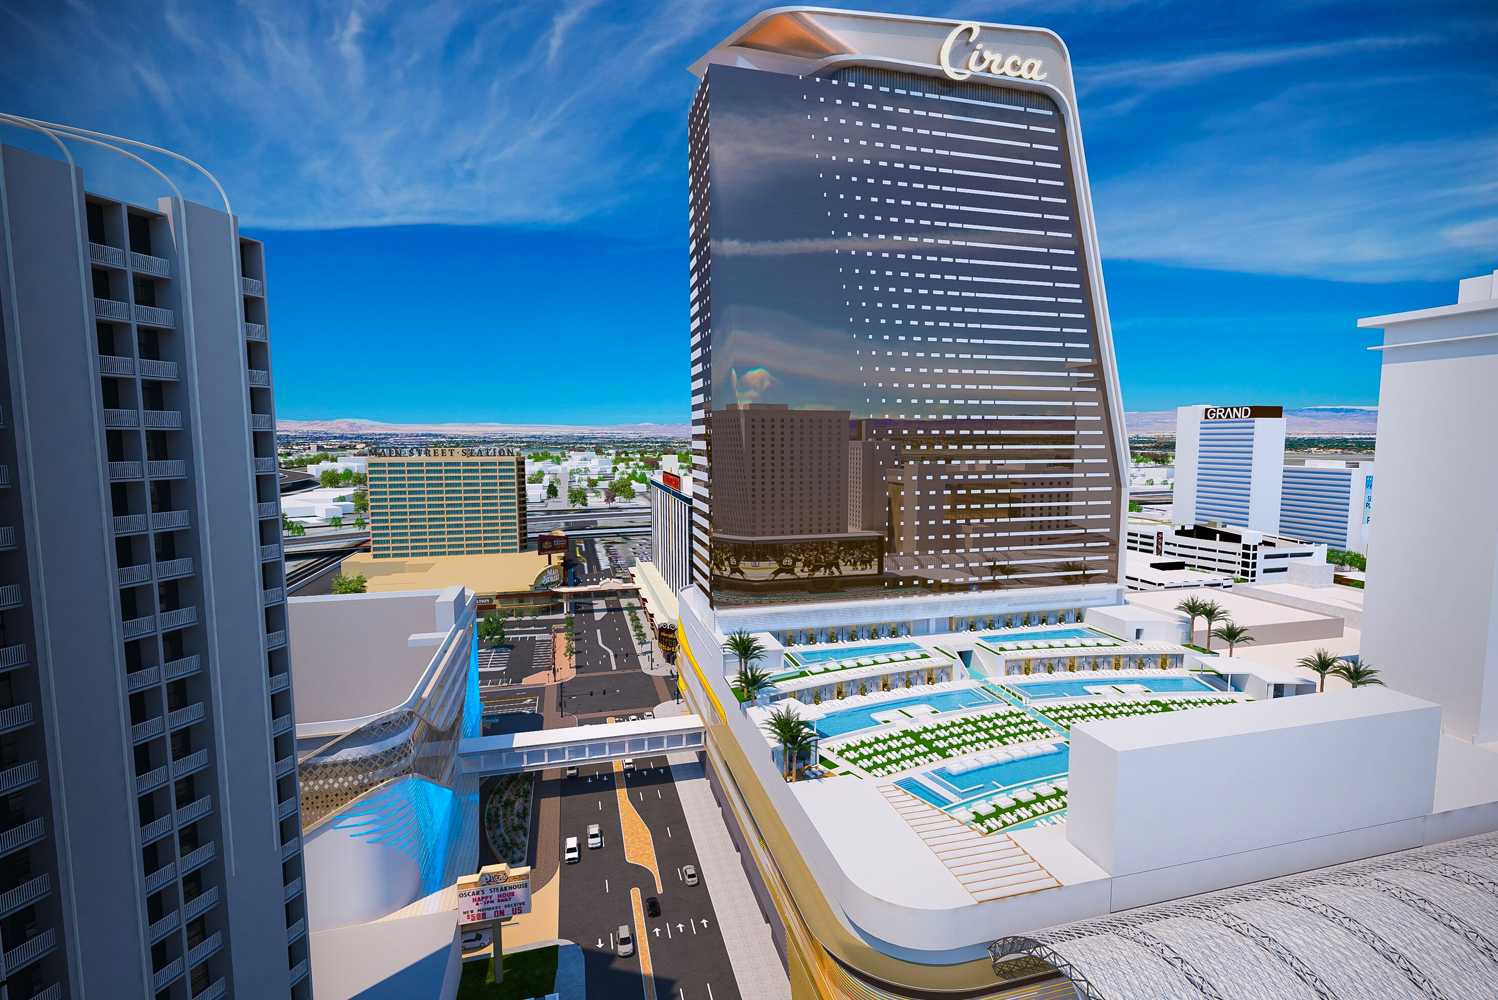 On track for a December 2020 opening, the project will be the first ground-up gaming resort in historic Downtown Las Vegas since 1980.